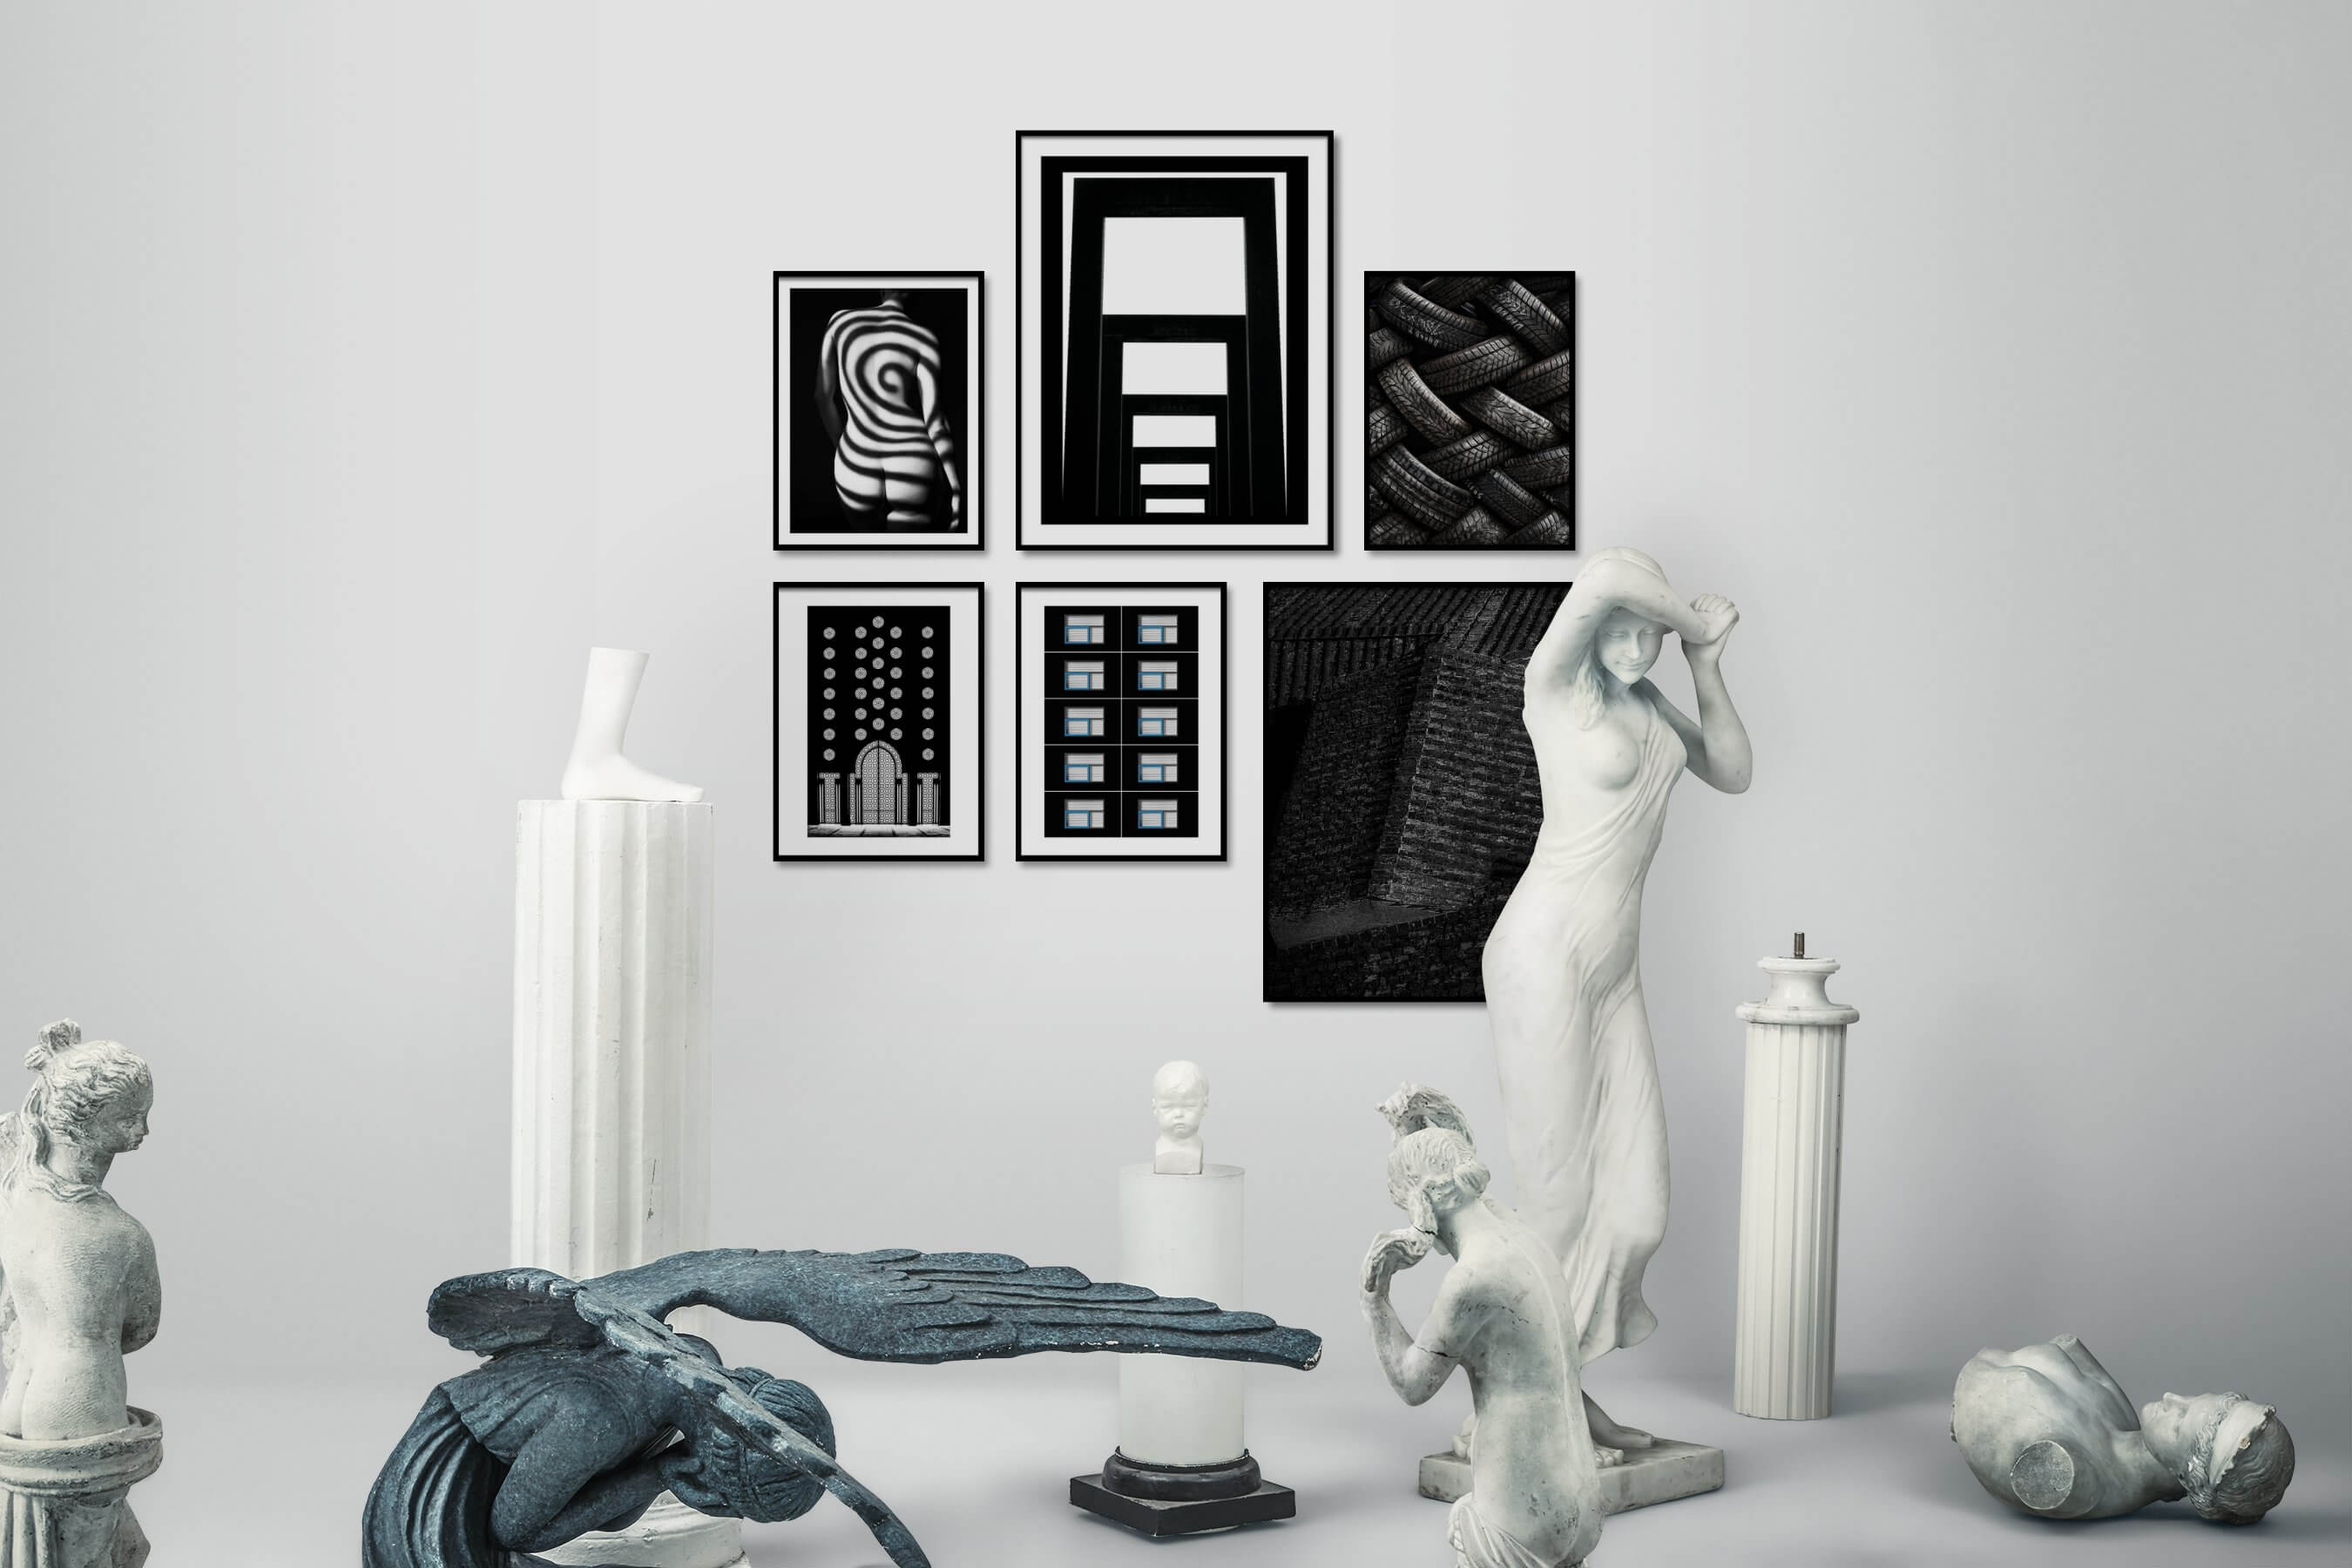 Gallery wall idea with six framed pictures arranged on a wall depicting Fashion & Beauty, Black & White, Dark Tones, For the Moderate, City Life, For the Minimalist, and For the Maximalist